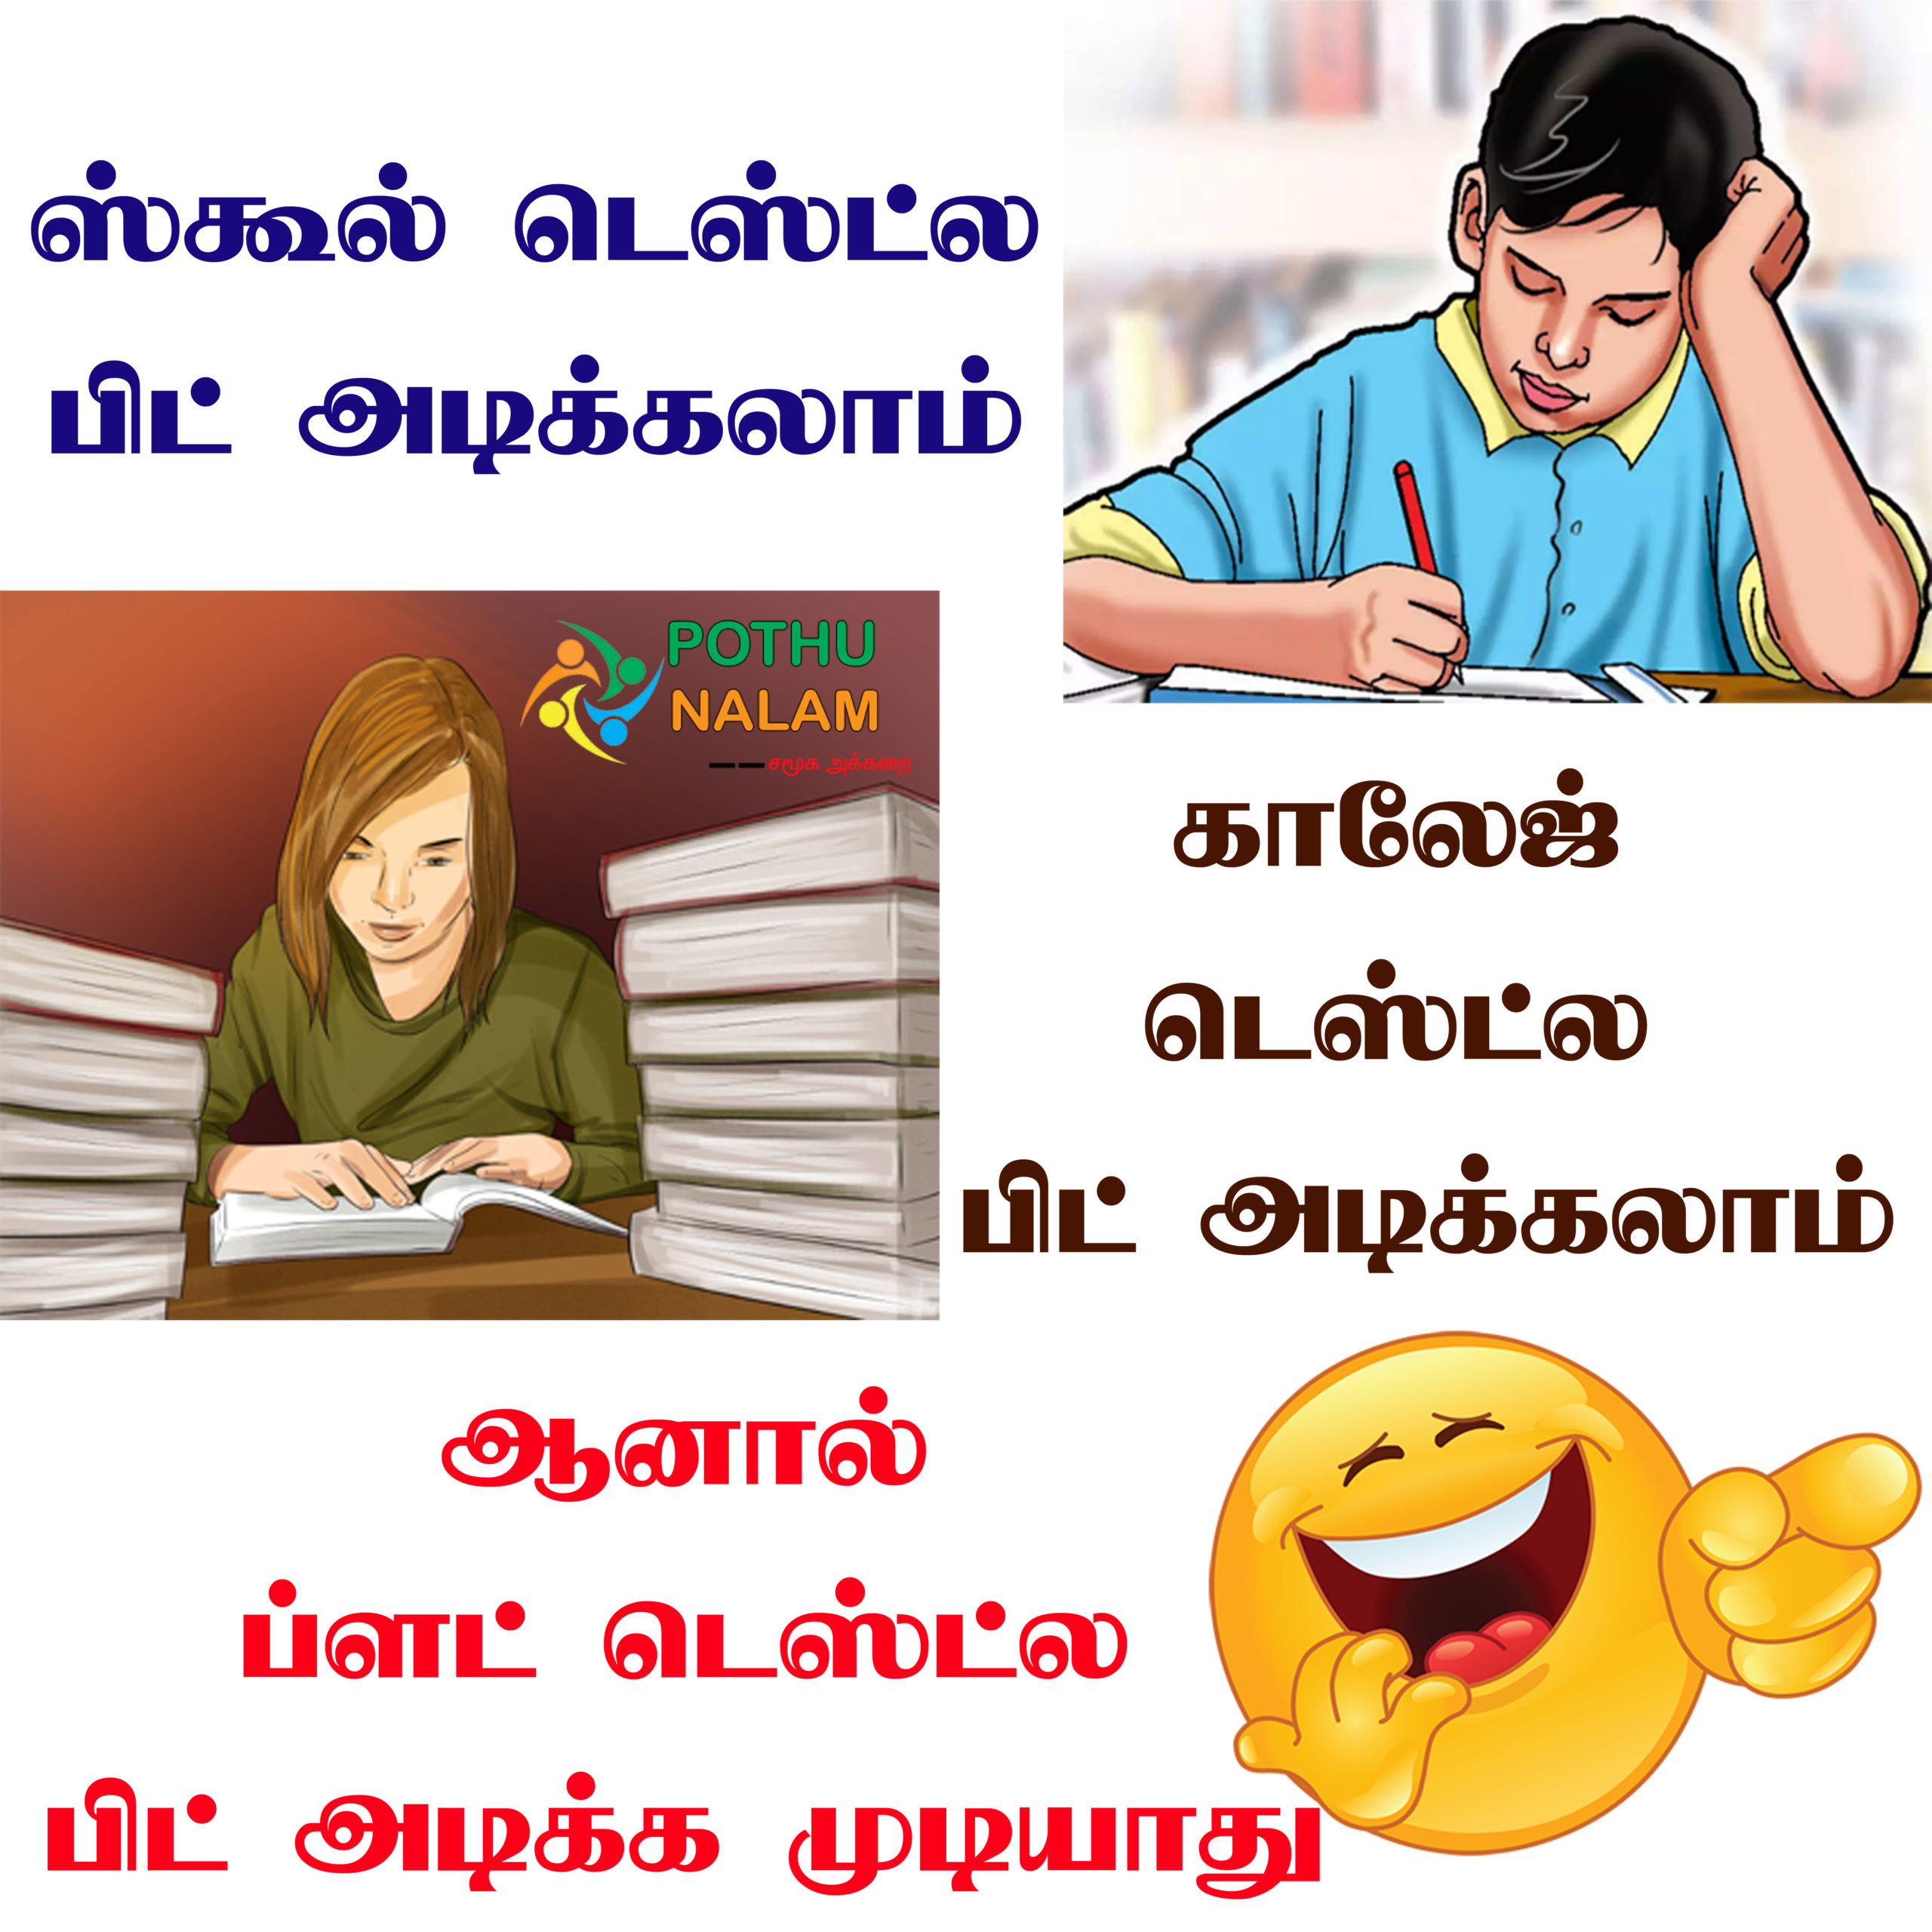 Comedy Quotes Images in Tamil